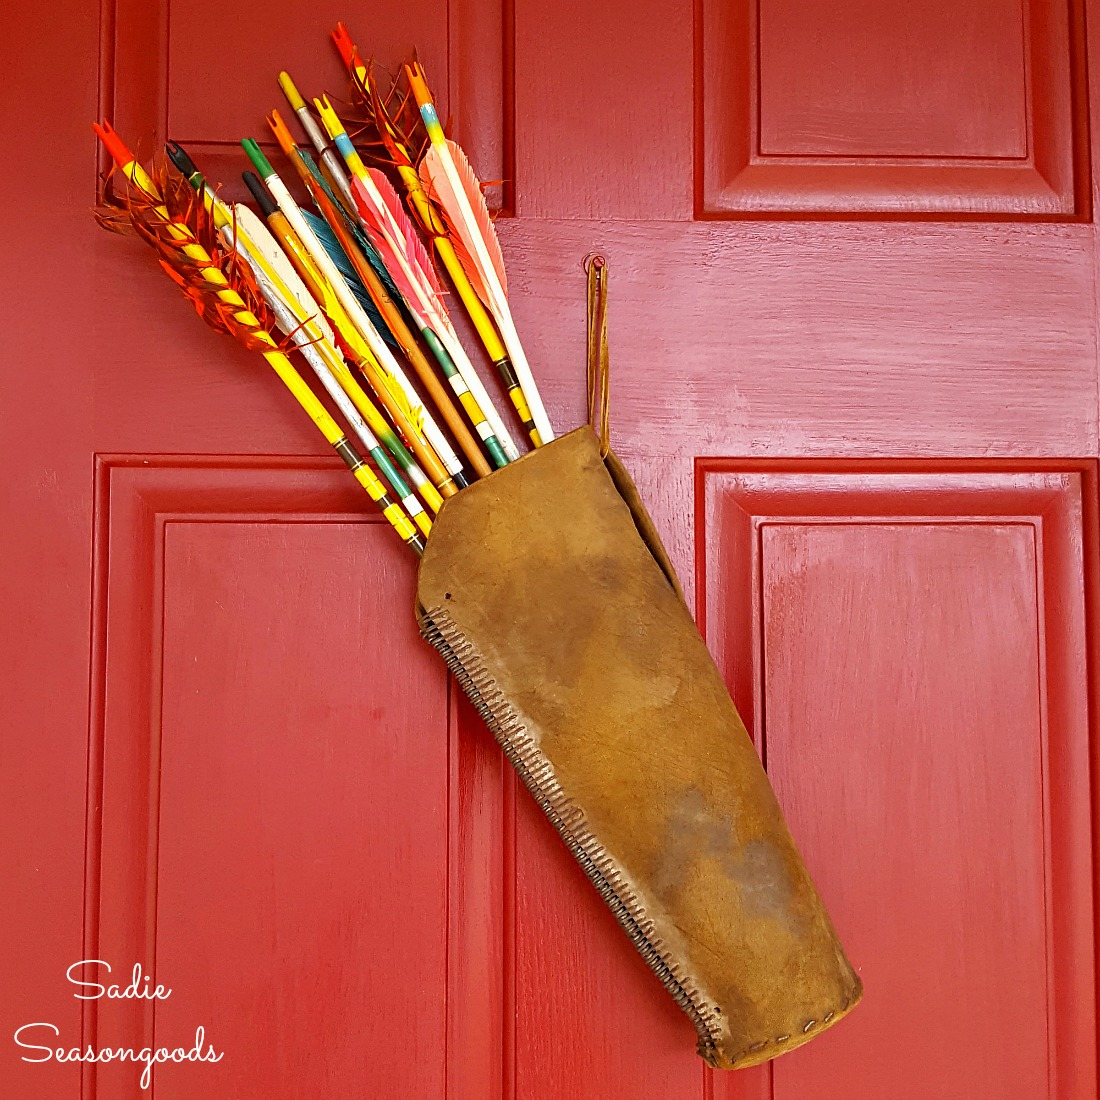 Vintage arrows or wooden arrows in a leather quiver as harvest decor and fall wreath for the front door